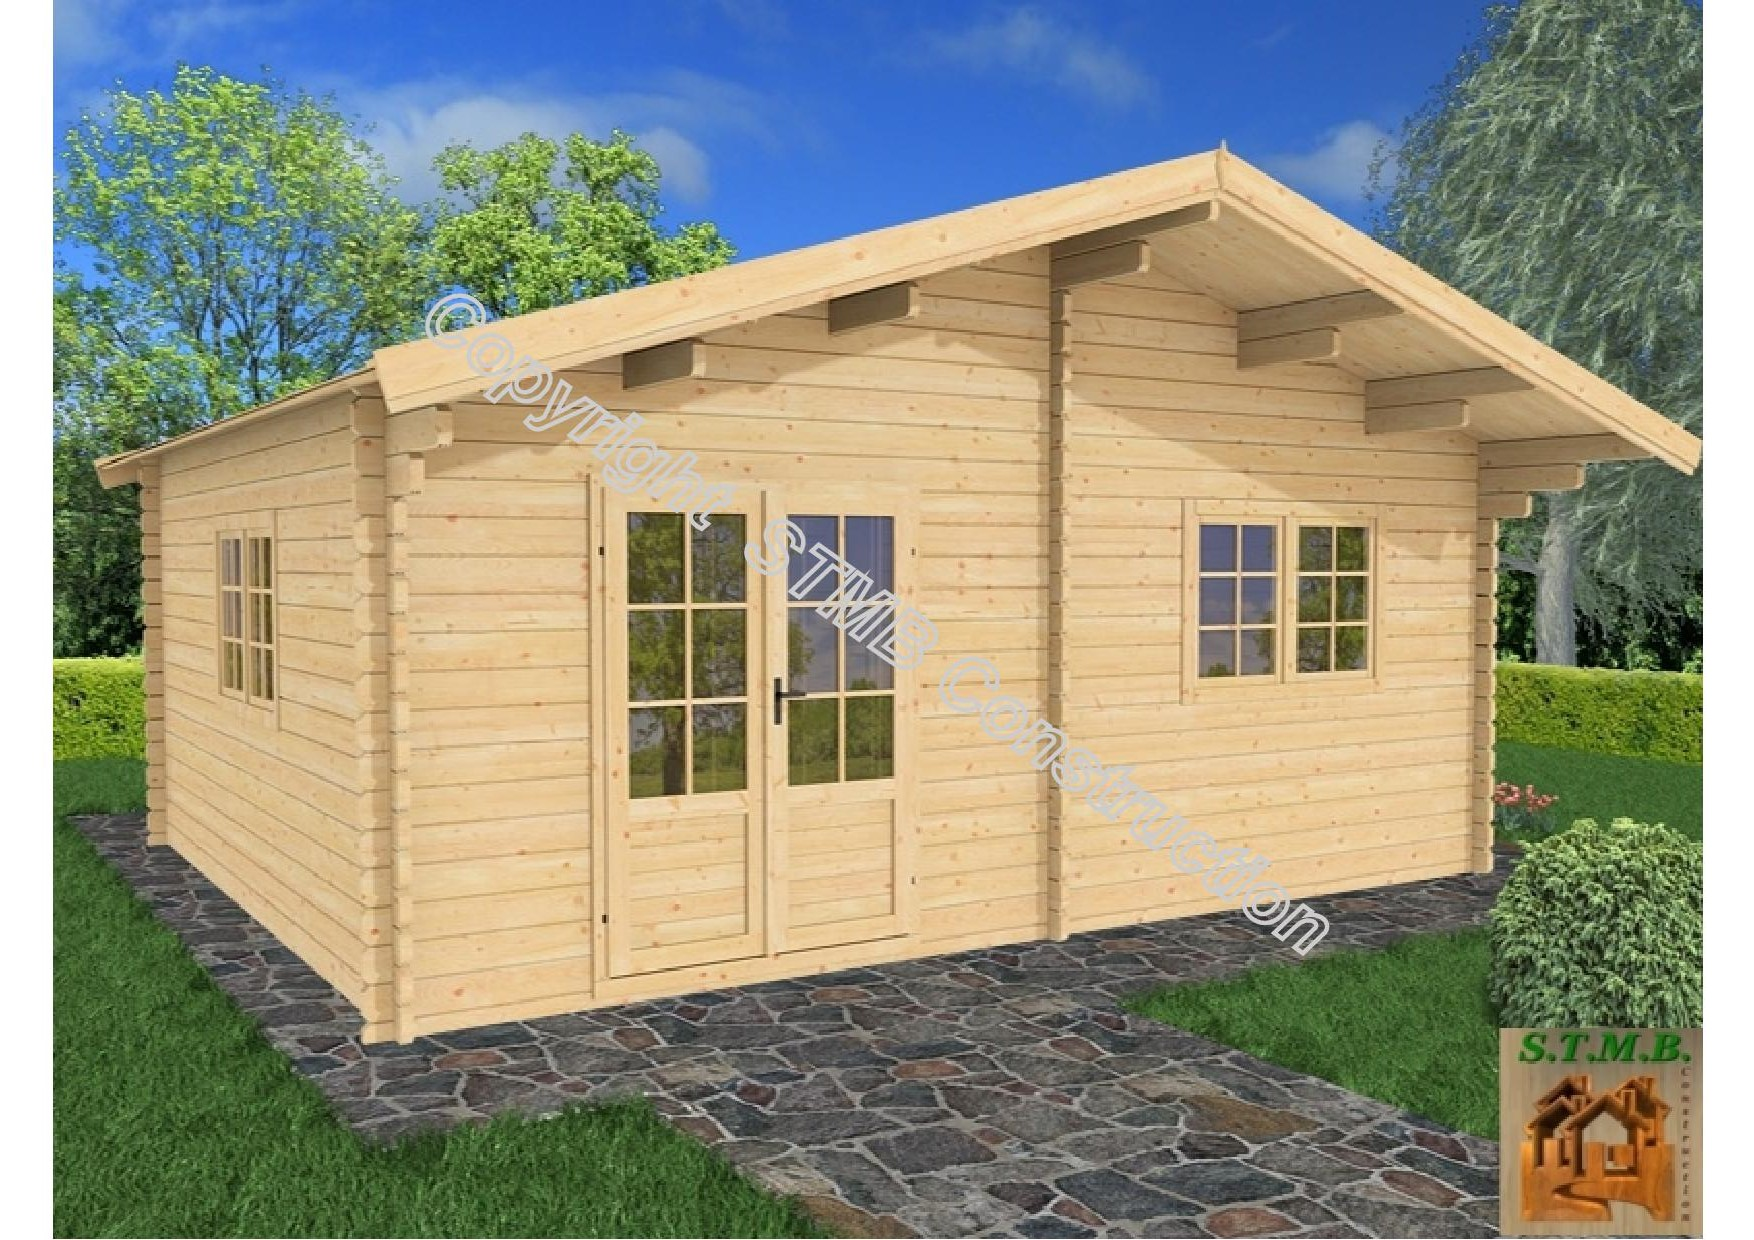 Chalet en bois en kit mod le genevier 30 m2 direct usine for Modele de chalet en bois